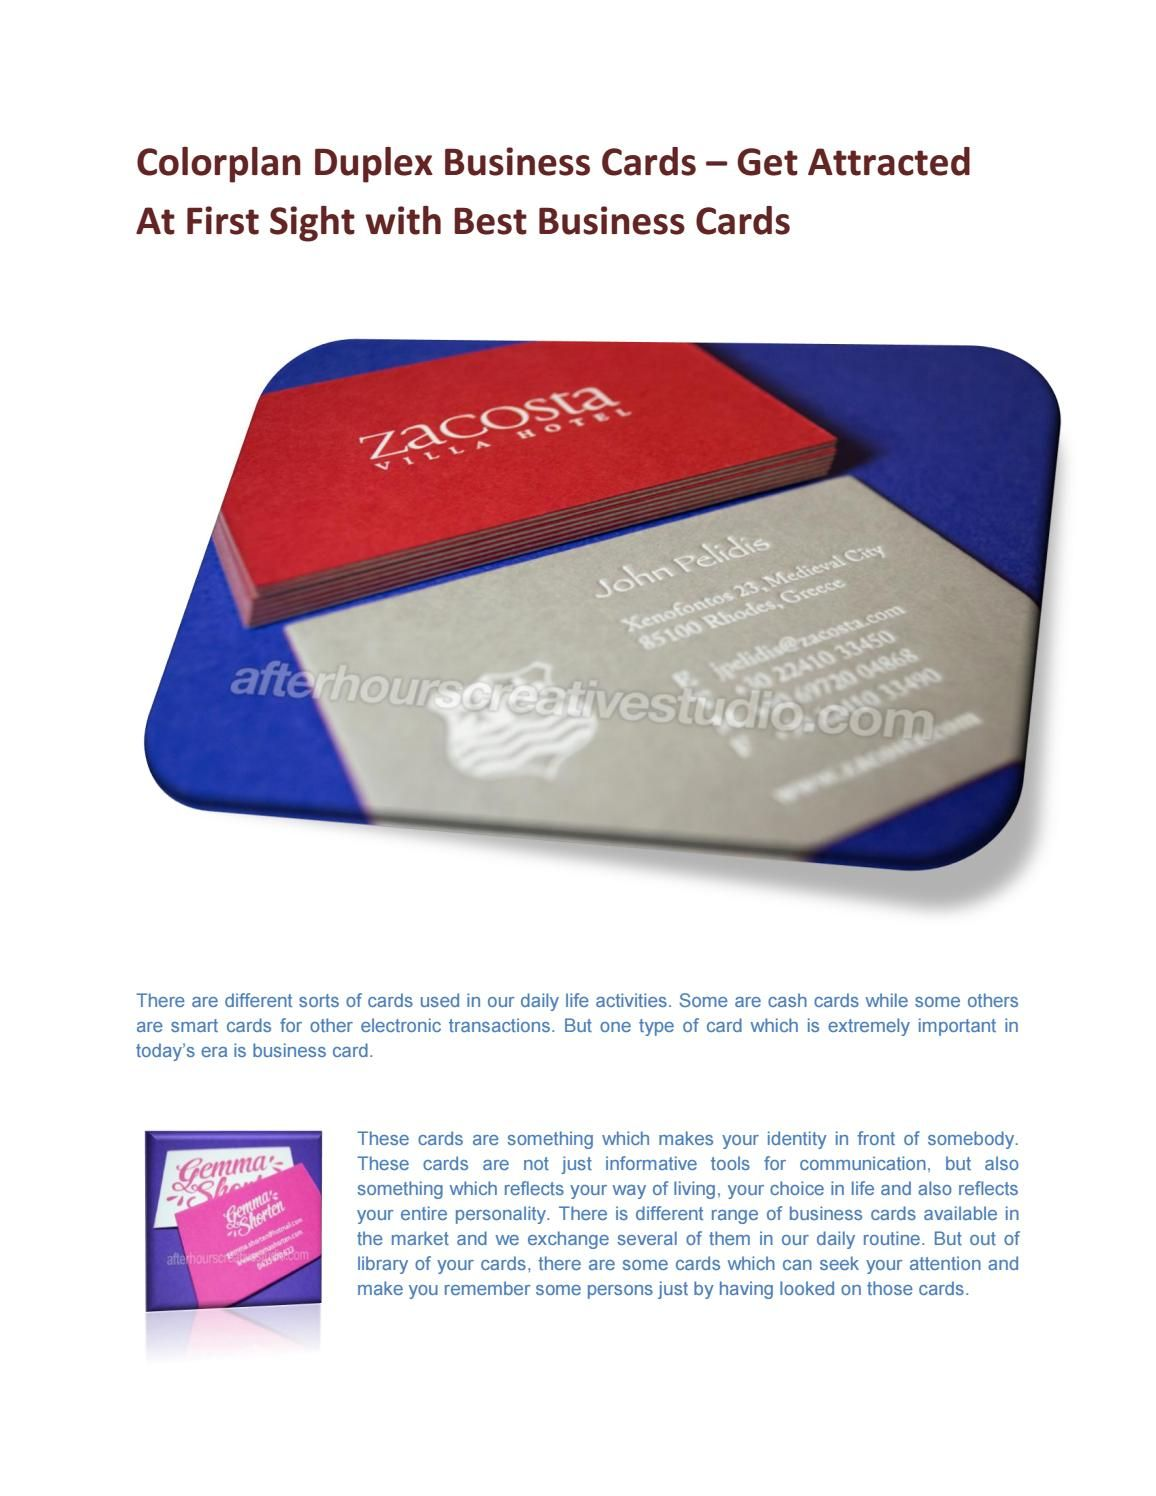 Get attracted at first sight with best cards - Colorplan Duplex ...